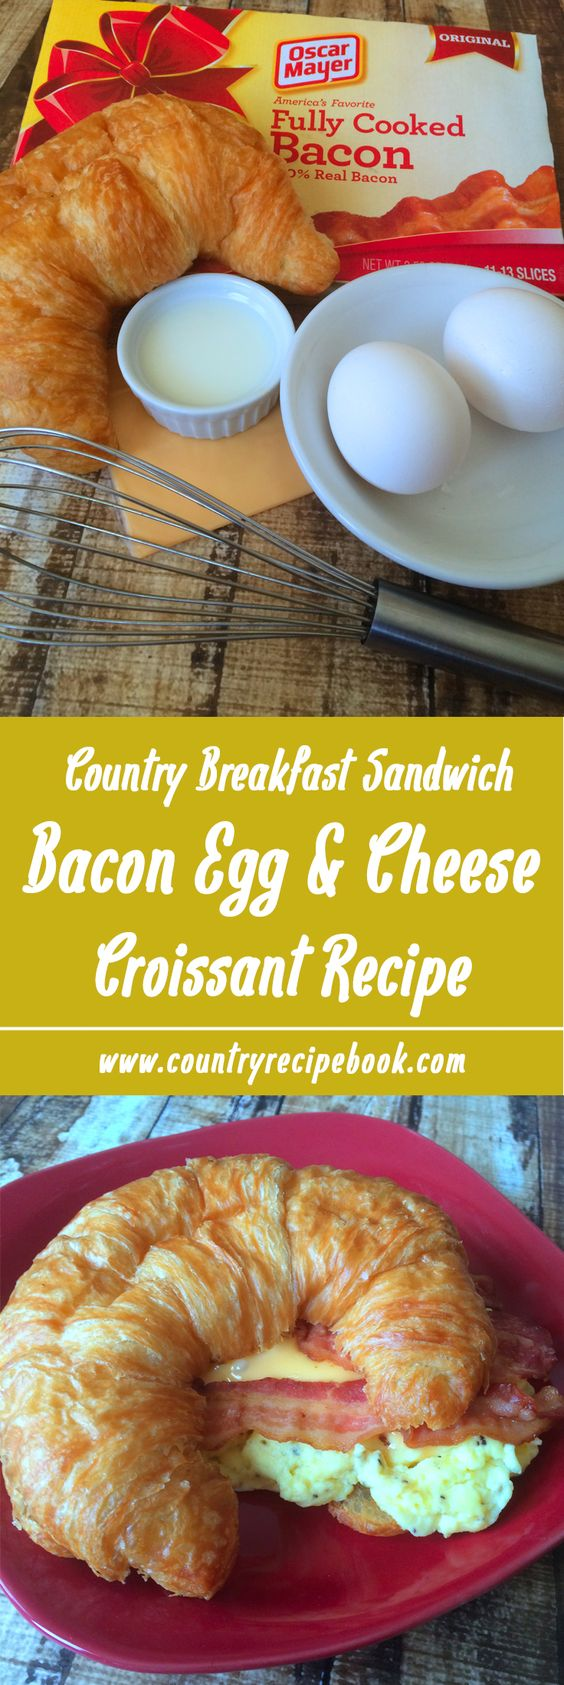 how to make a bacon egg and cheese breakfast sandwich